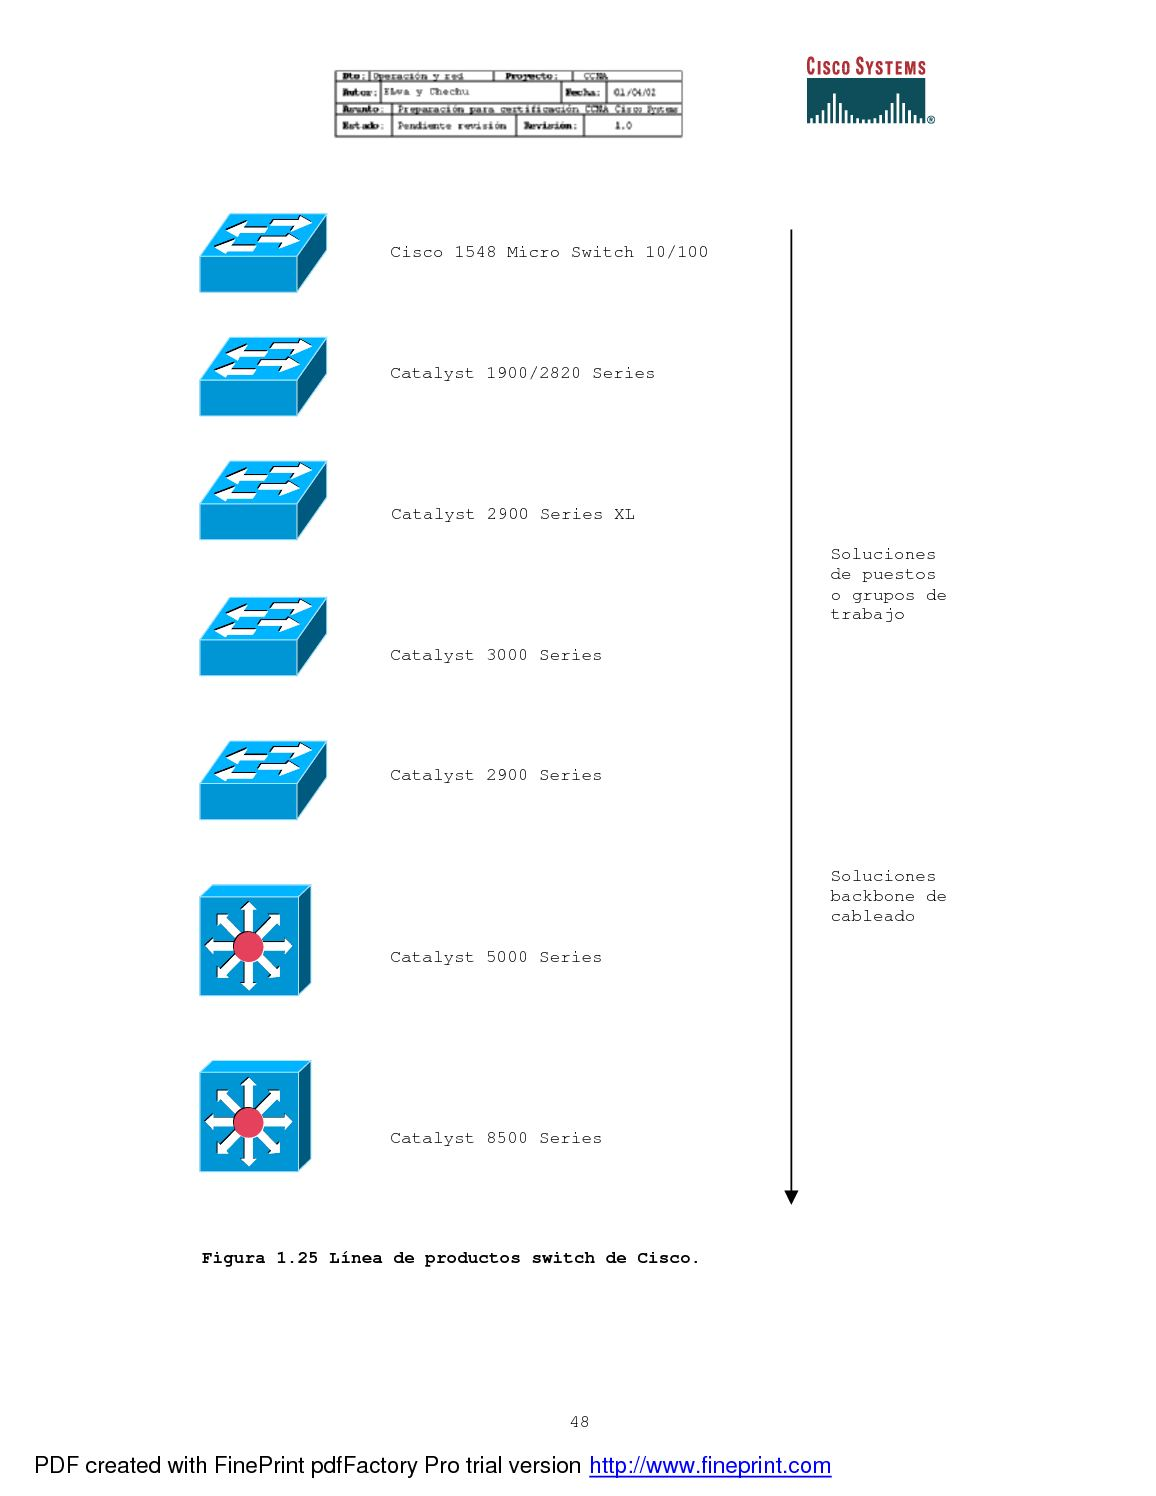 Cisco Systems - Manual - Redes - Routers Y Switches Cisco - CALAMEO